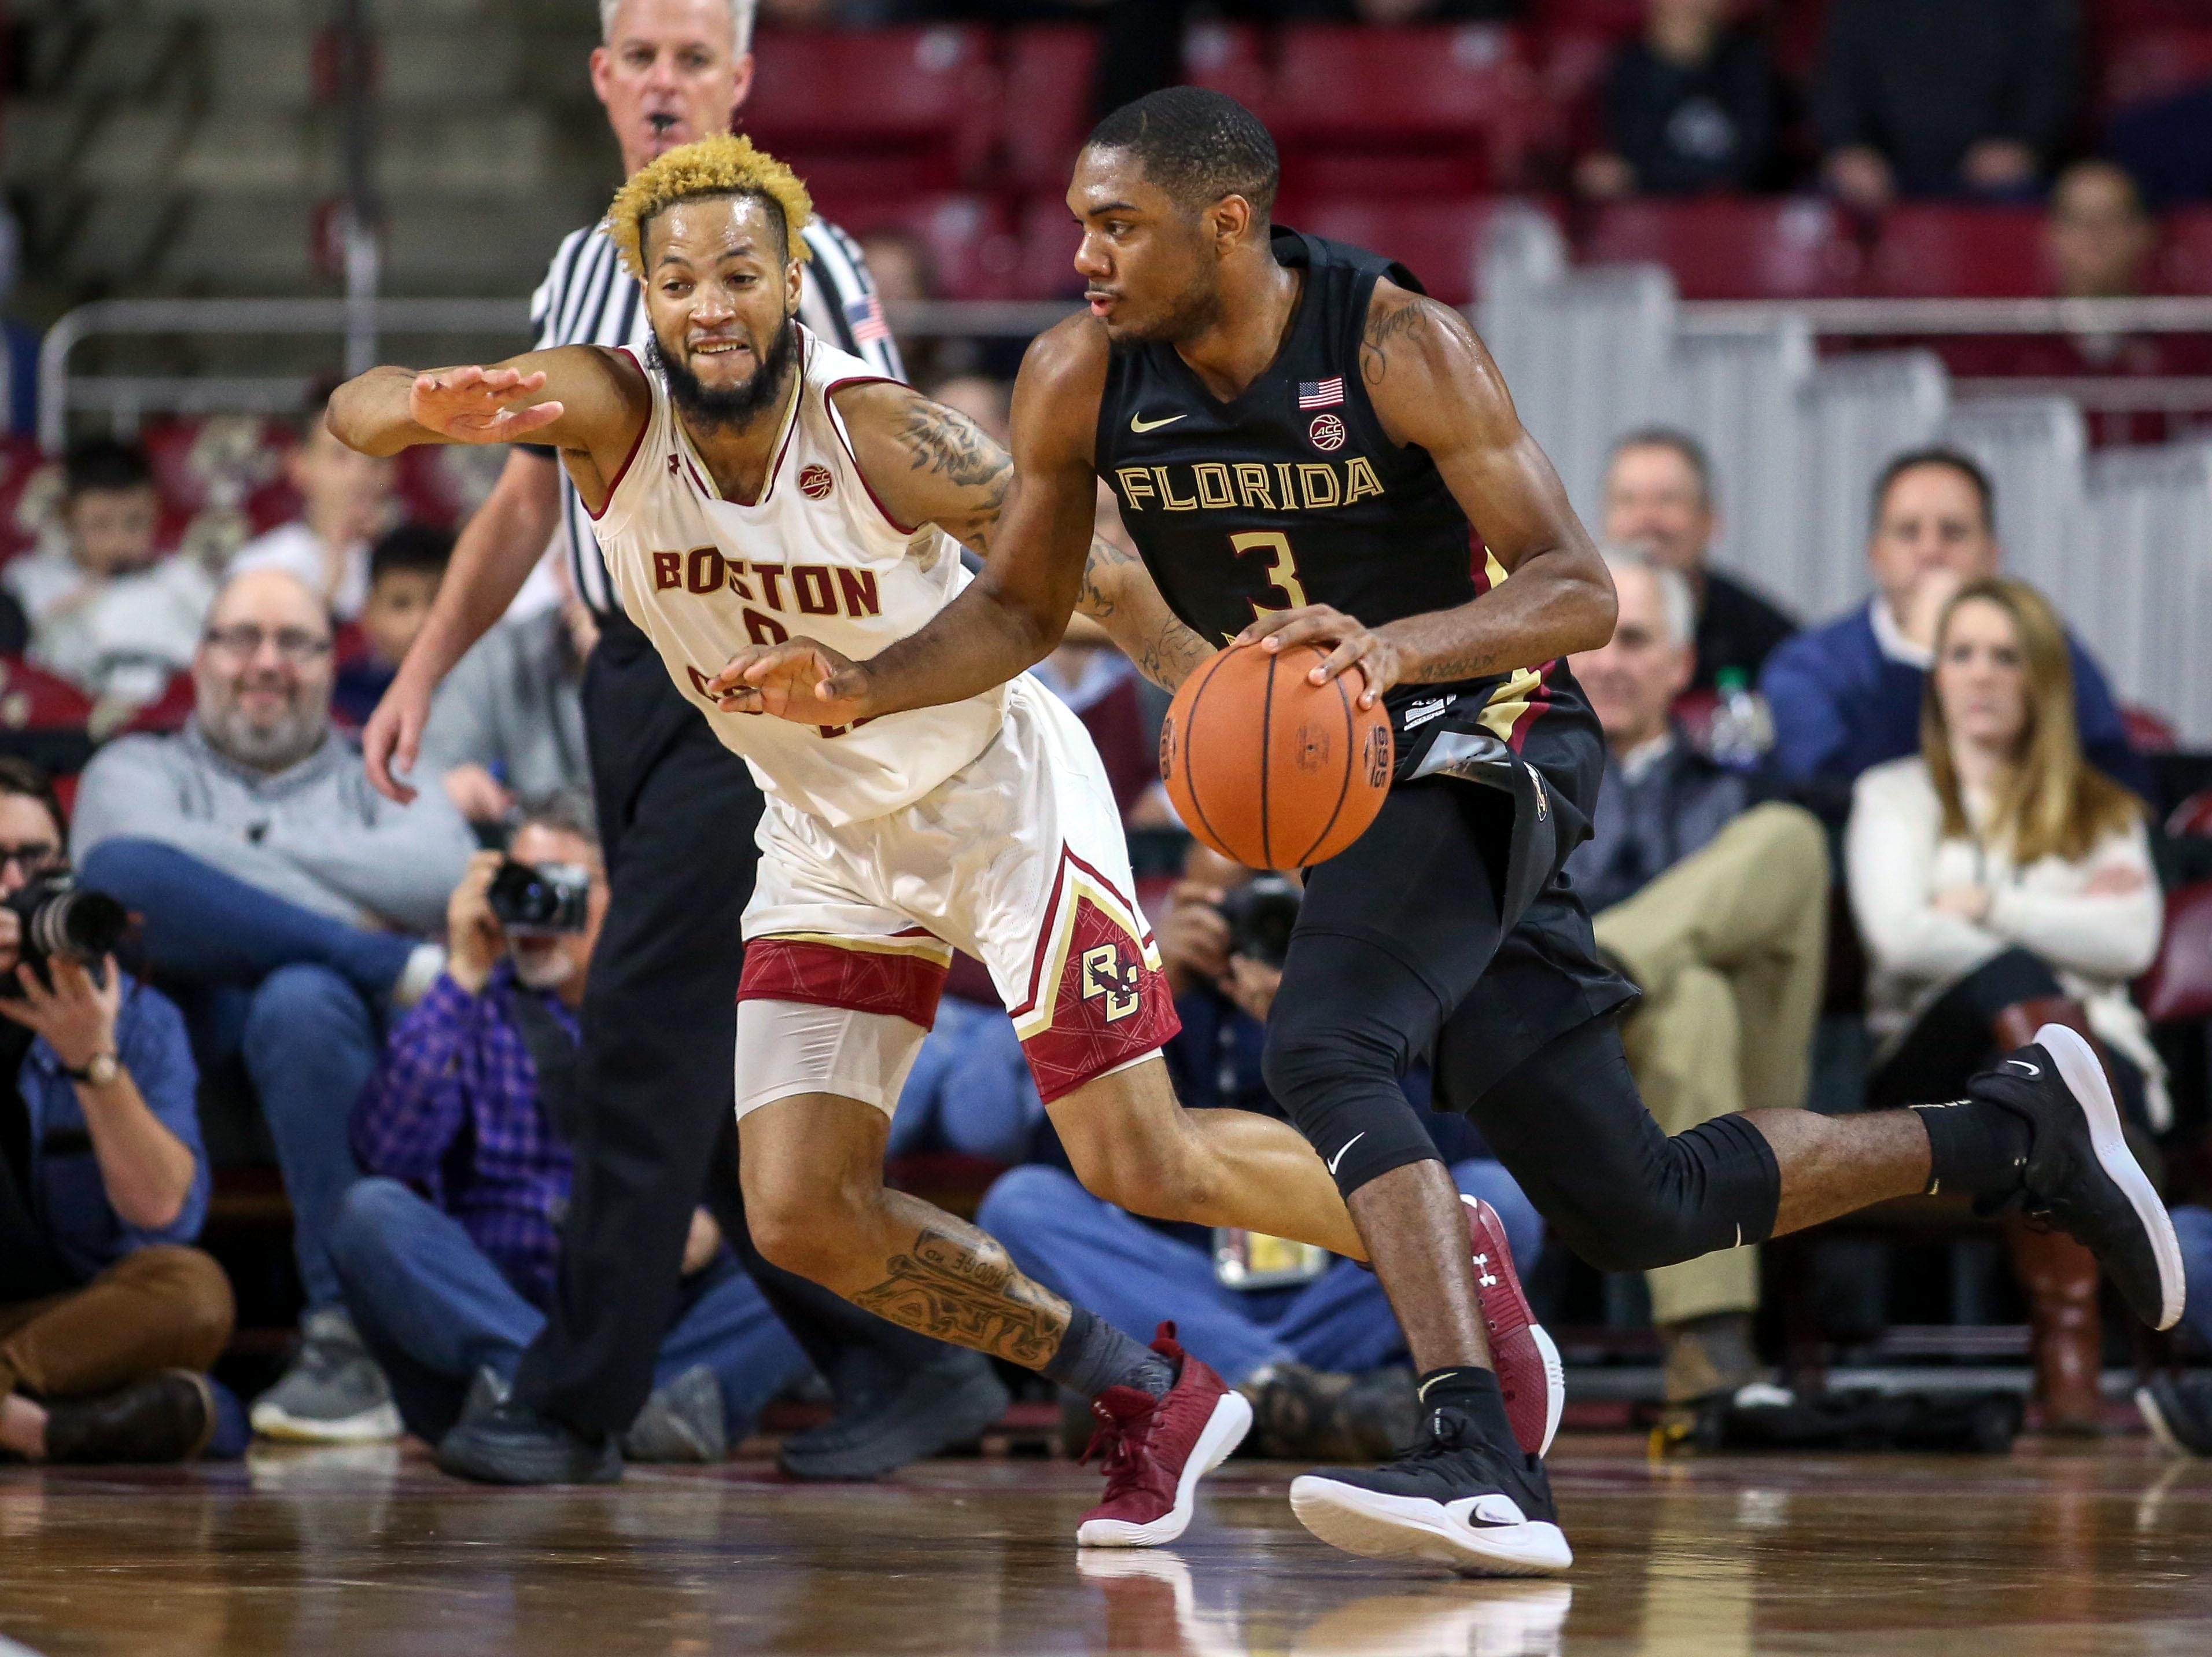 Jan 20, 2019; Chestnut Hill, MA, USA; Florida State Seminoles guard Trent Forrest (3) is defended by Boston College Eagles guard Ky Bowman (0) during the first half at Conte Forum. Mandatory Credit: Paul Rutherford-USA TODAY Sports